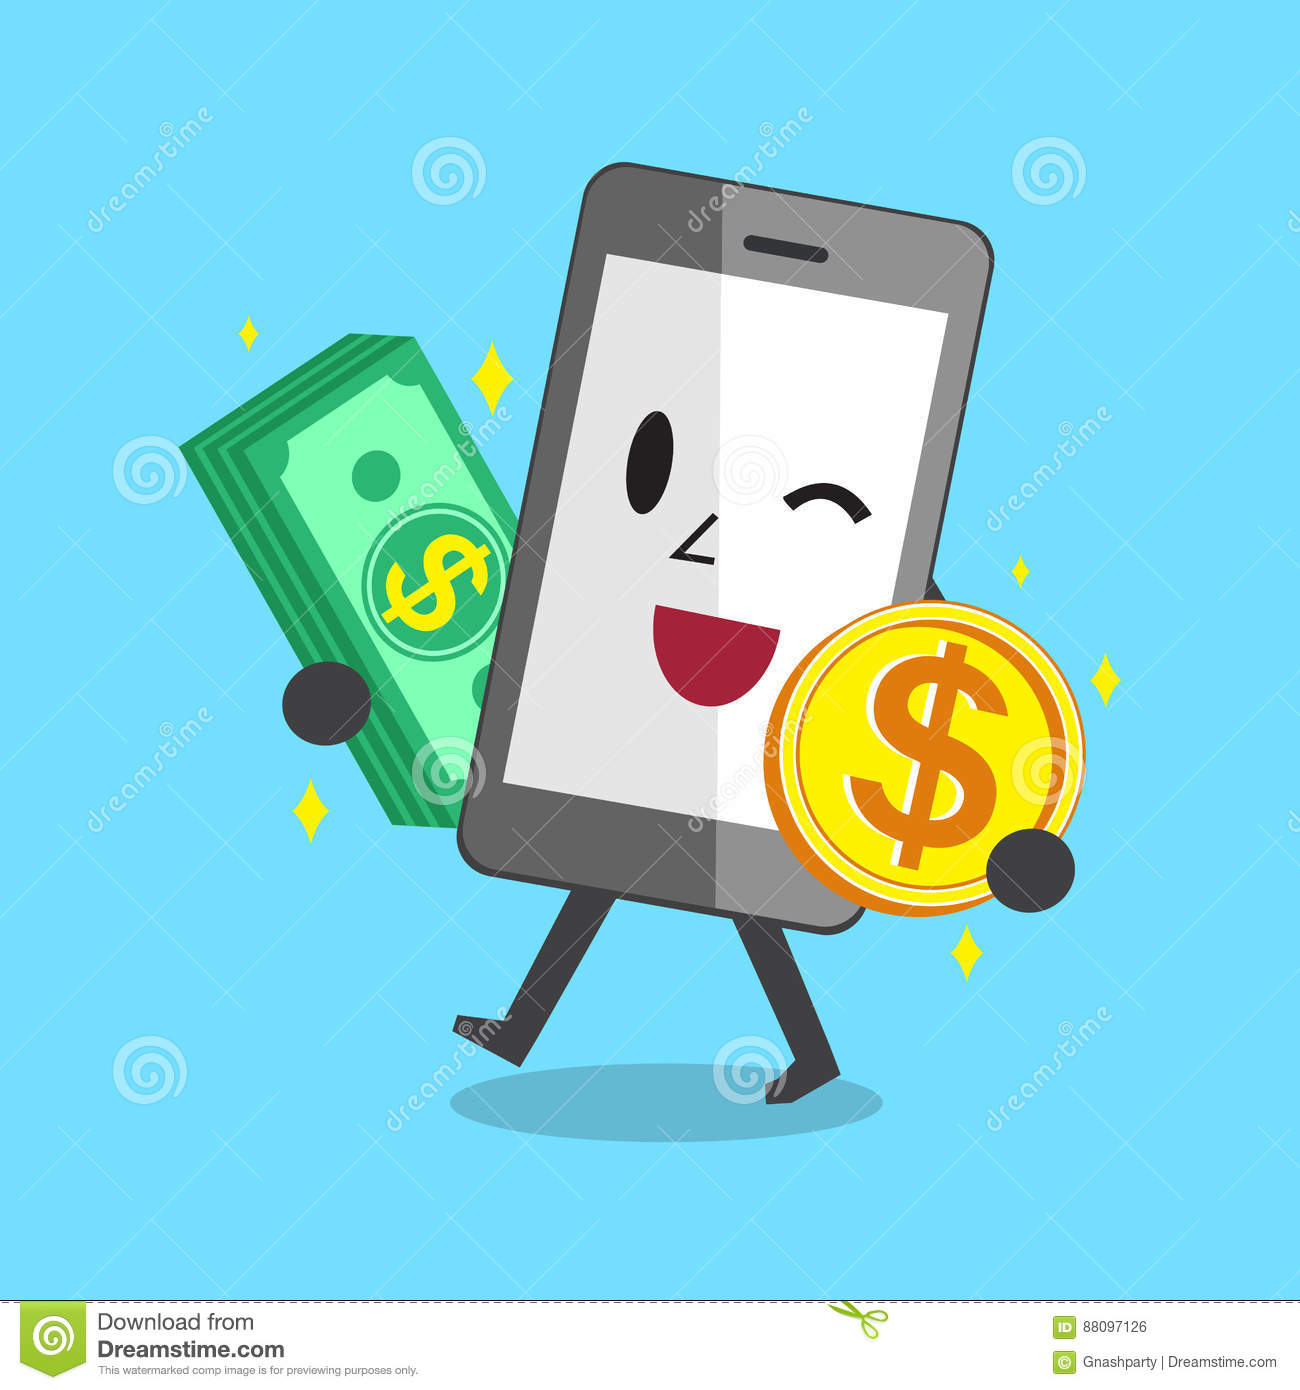 Smartphone carrying money stack and coin